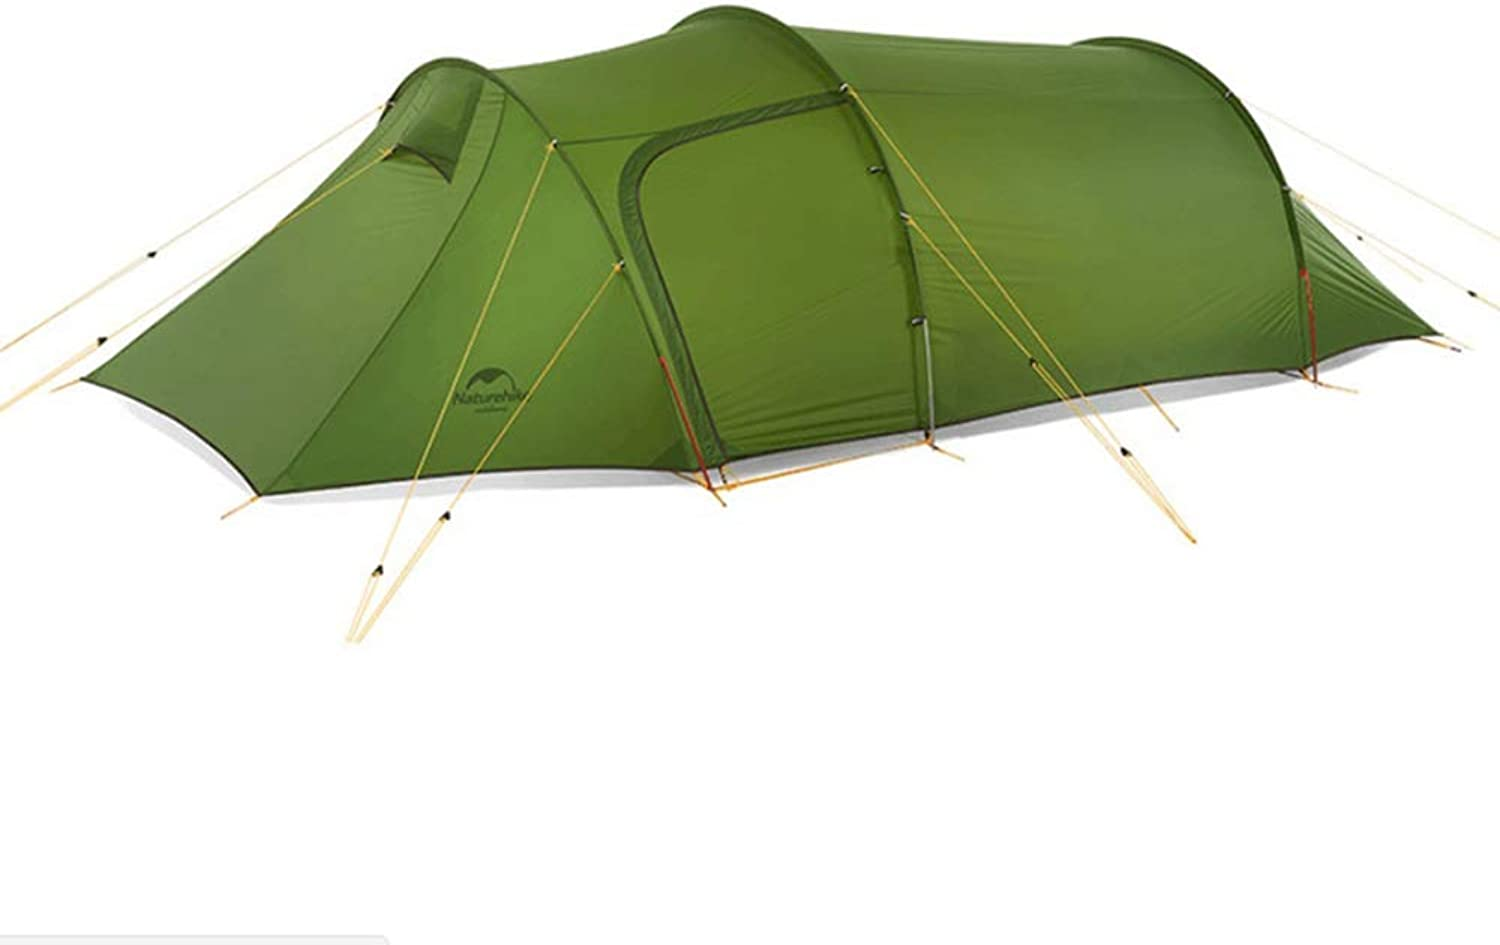 Ultralight Tunnel Tent Outdoor Double Mountaineering Camping One Room Four Seasons Tent Camping Hiking 3 Persons Tent